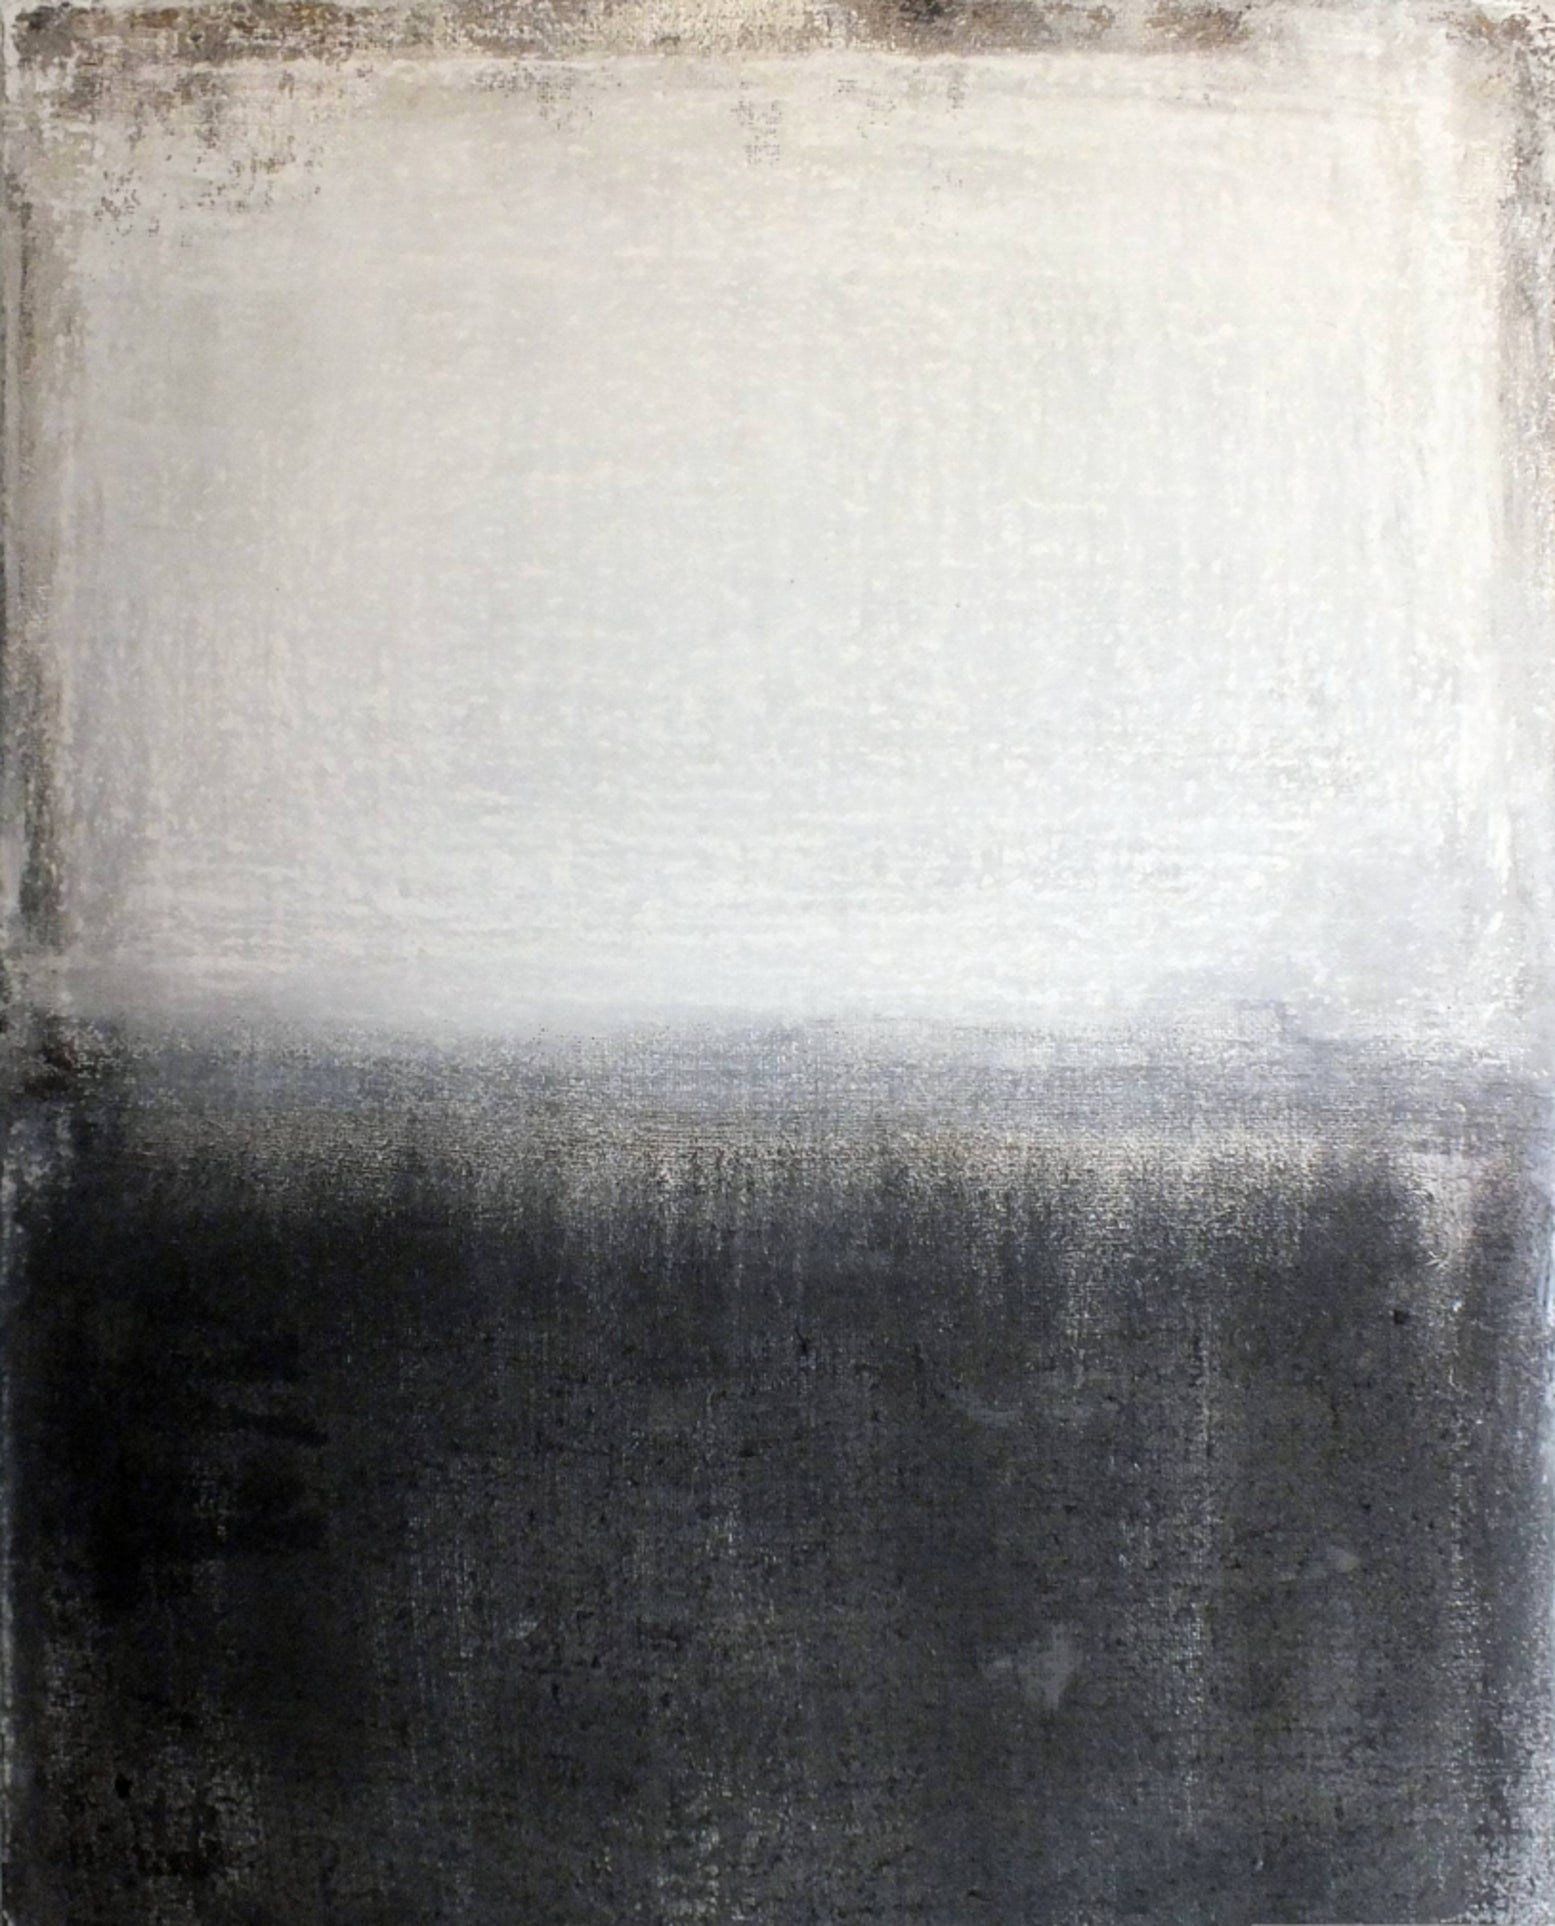 Landscape 21, Minimalist Mixed media Art Contemporary Abstract Black White